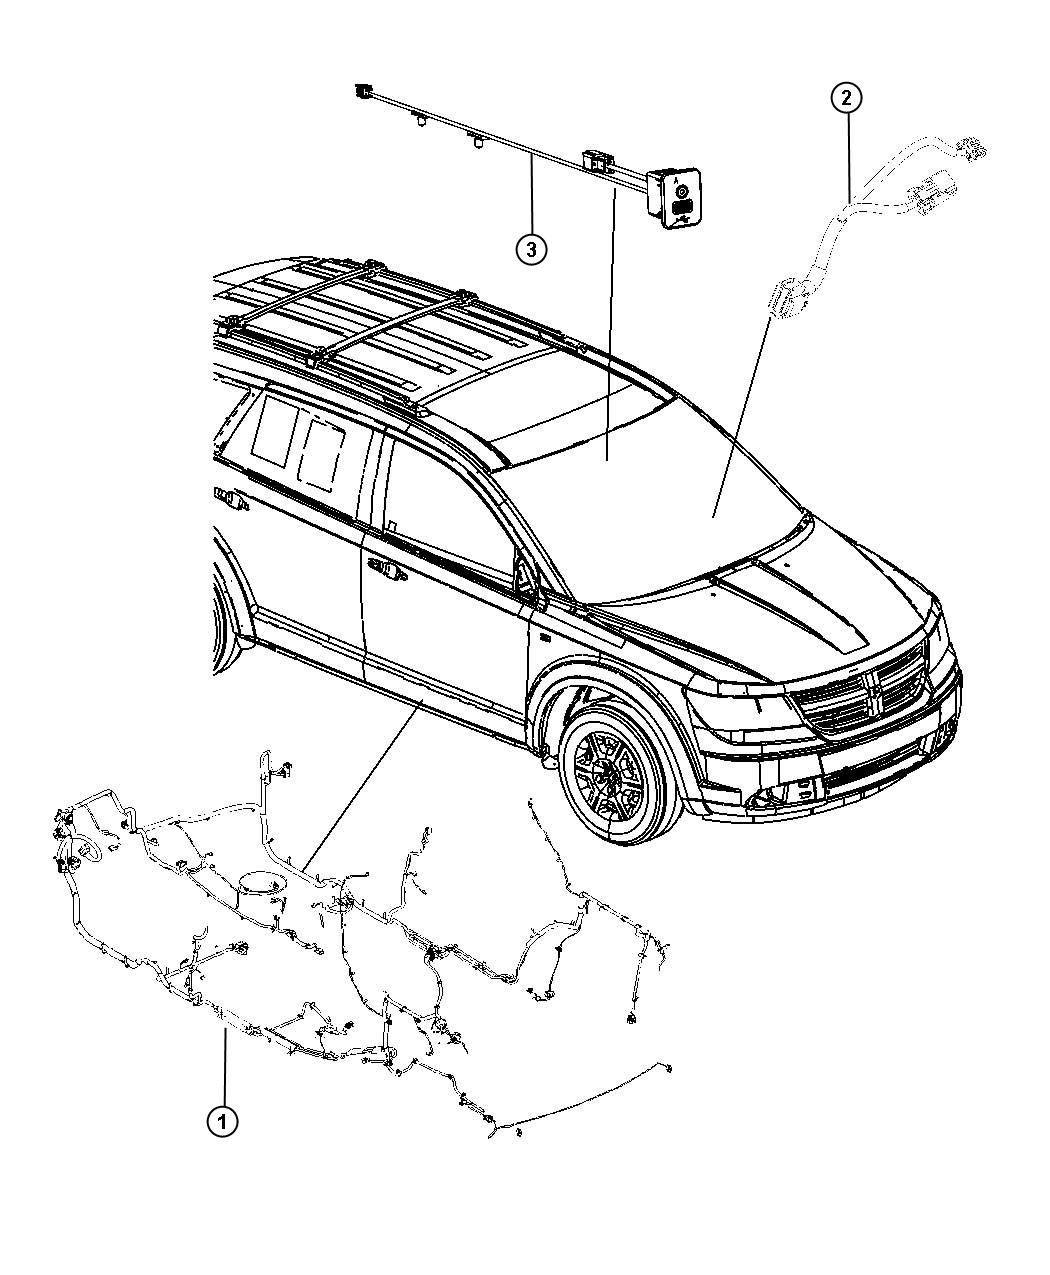 Dodge Journey Wiring. Unified body. [pwr front windows, 1